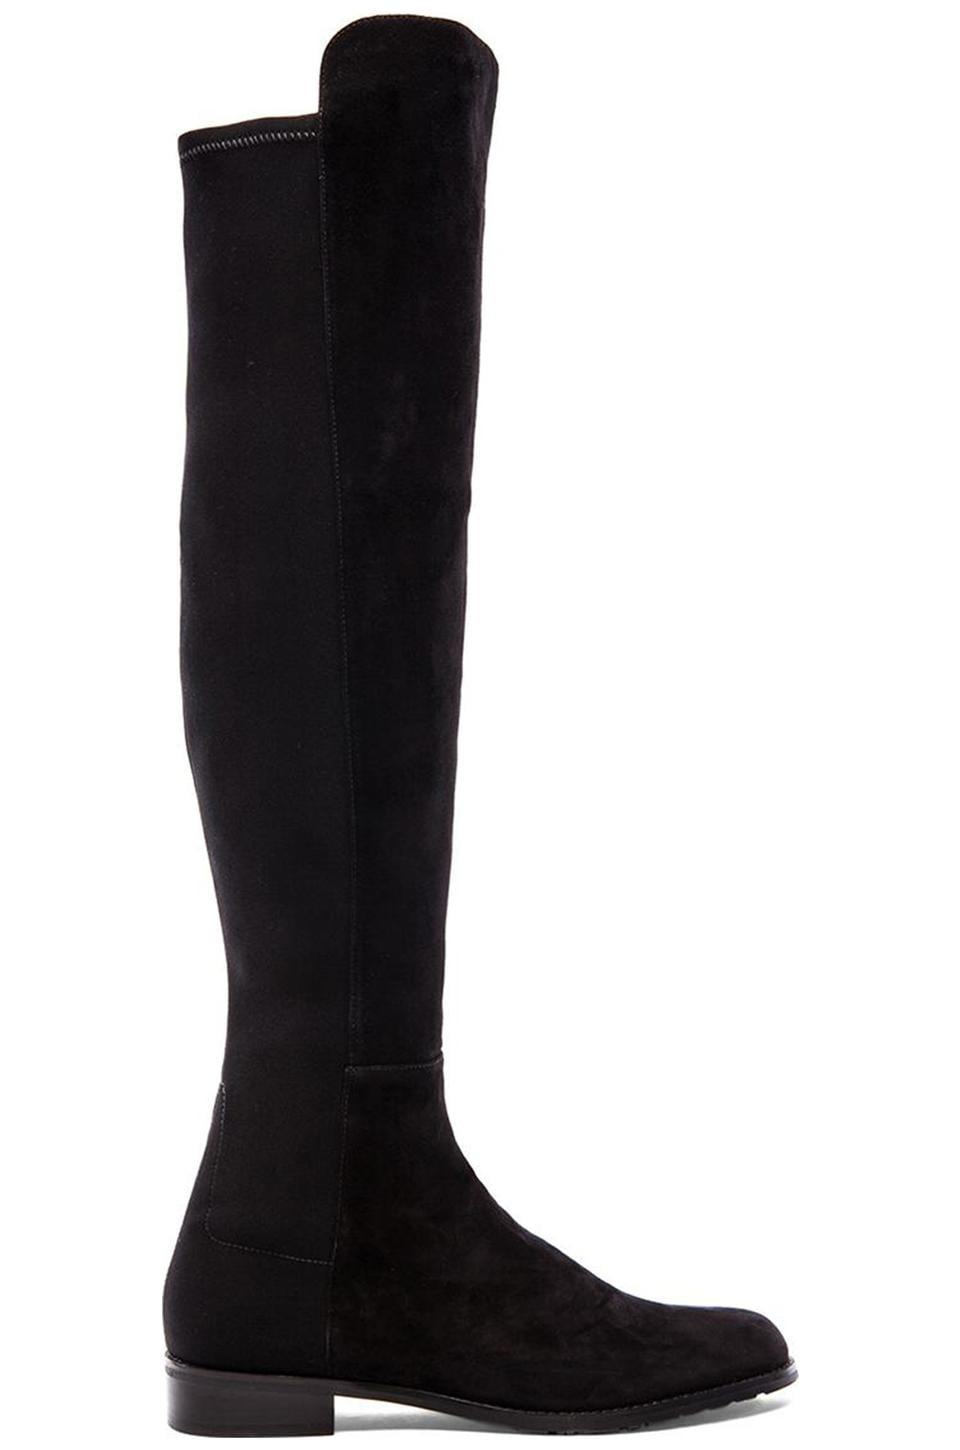 Stuart Weitzman 5050 Stretch Boot in Black Suede